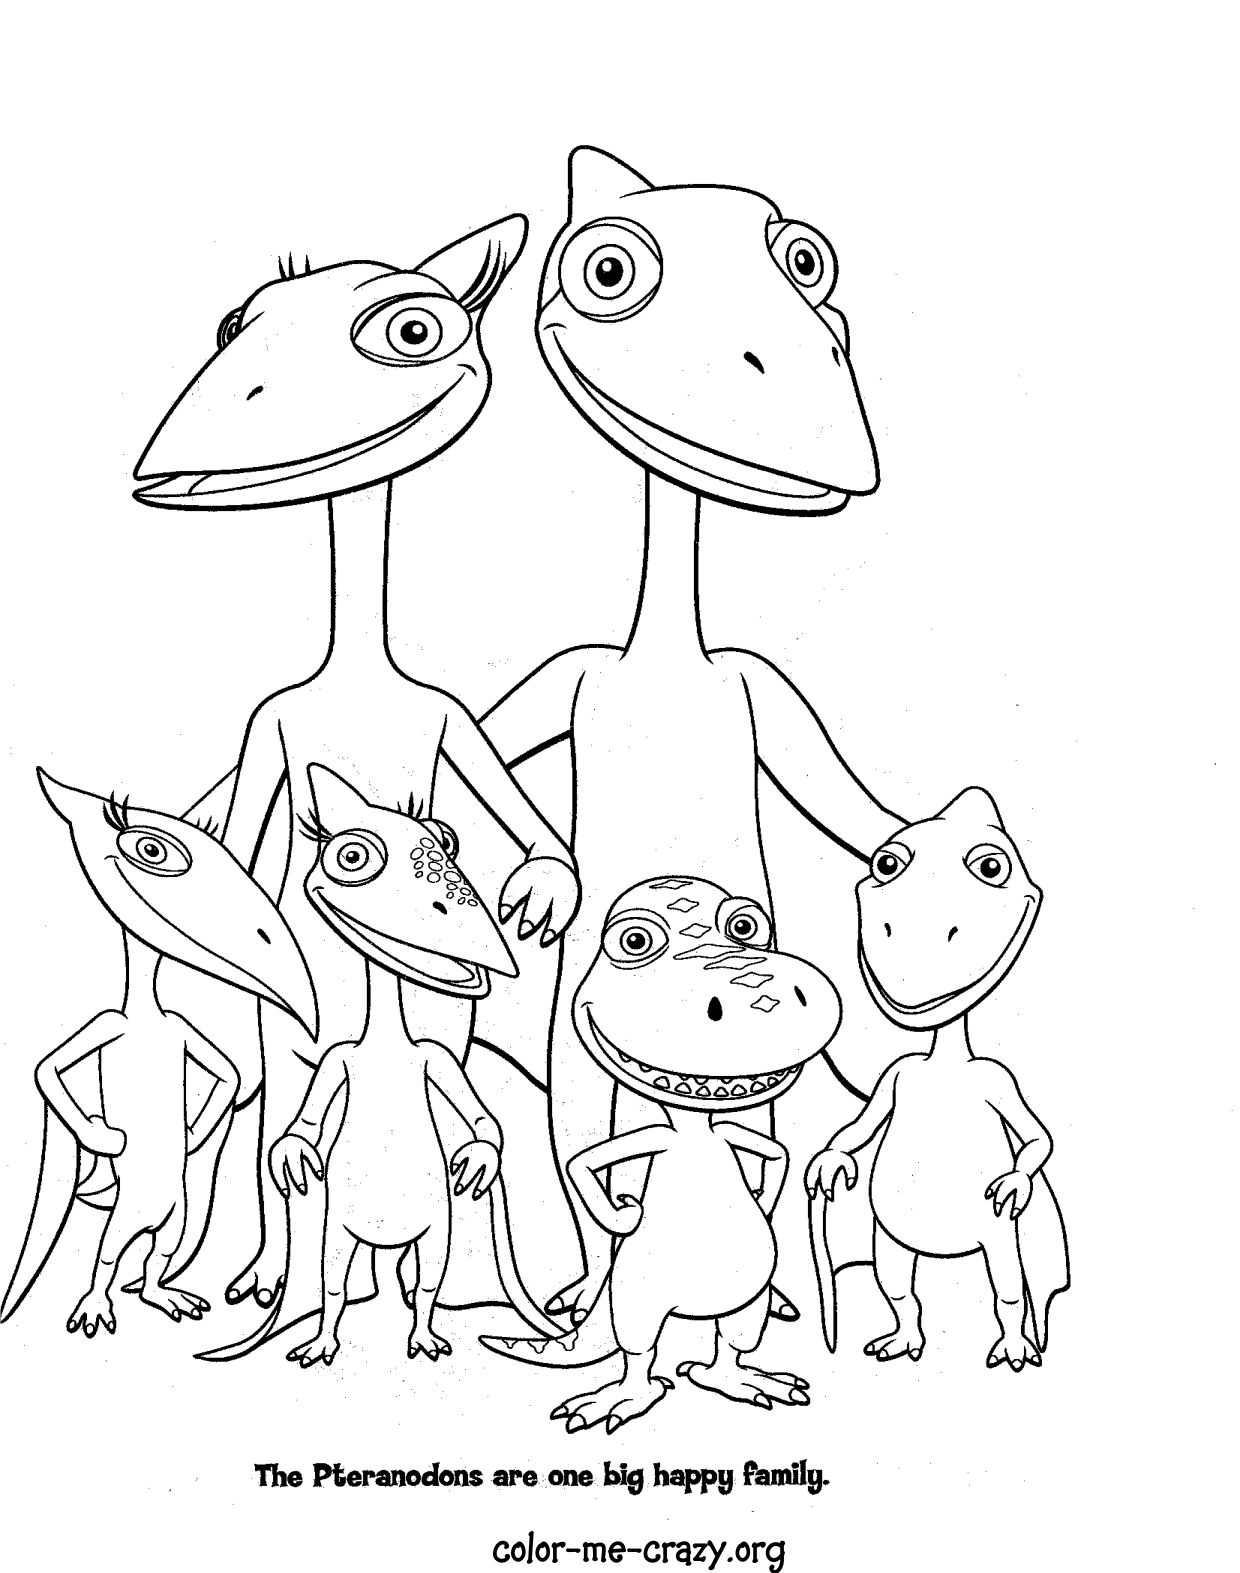 dino coloring page dinosaurs coloring pages printable minister coloring page dino coloring